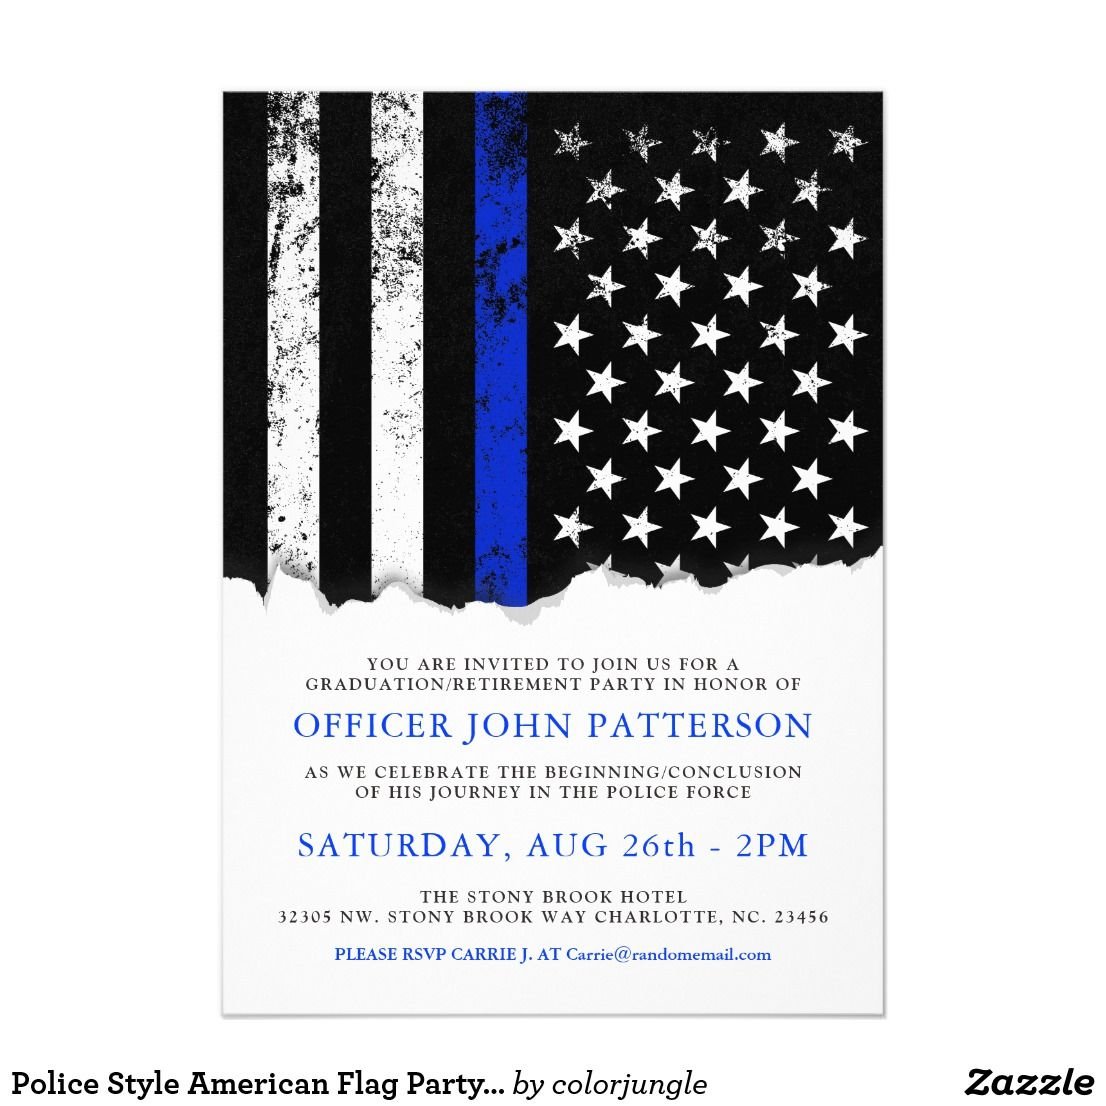 Police Style American Flag Party Event Wht Invite Zazzle Com American Flag Party Party Event Graduation Invitations